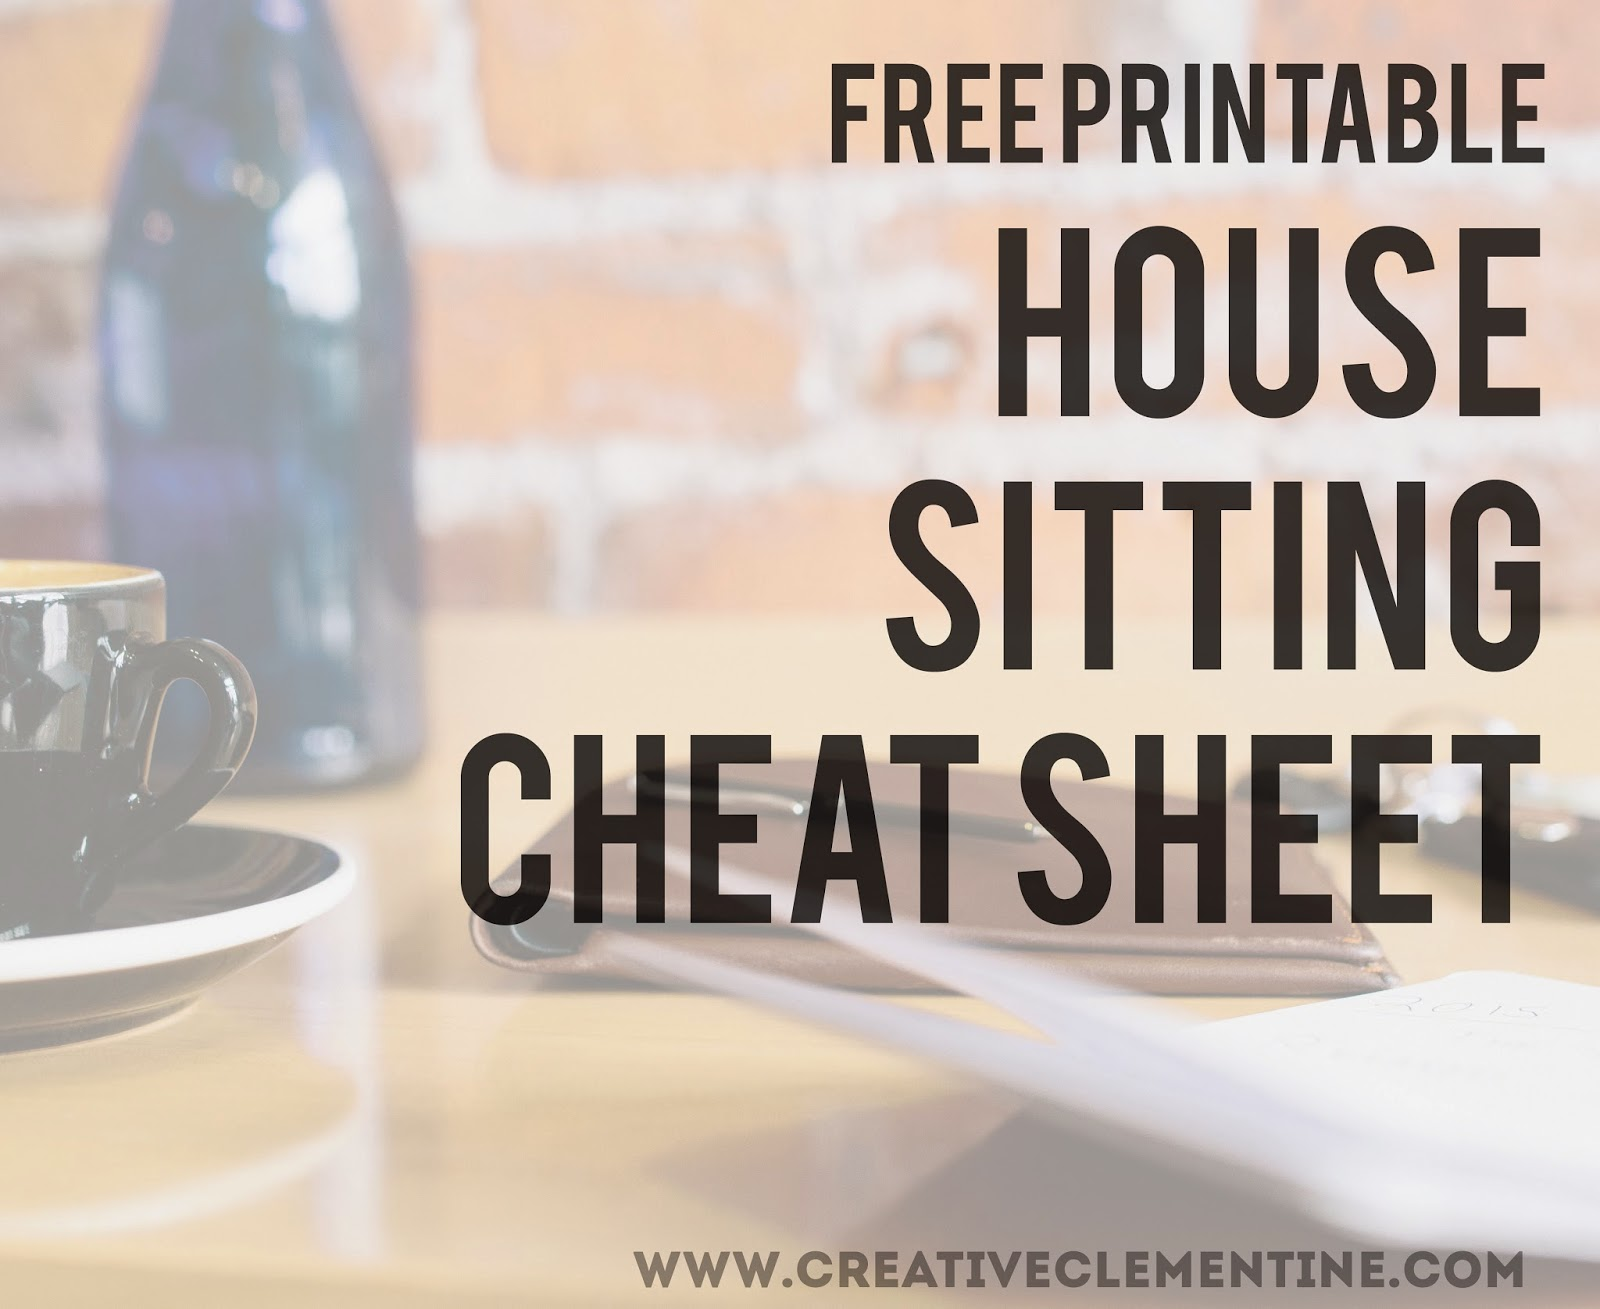 free printable house sitting cheat sheet creative clementine. Black Bedroom Furniture Sets. Home Design Ideas